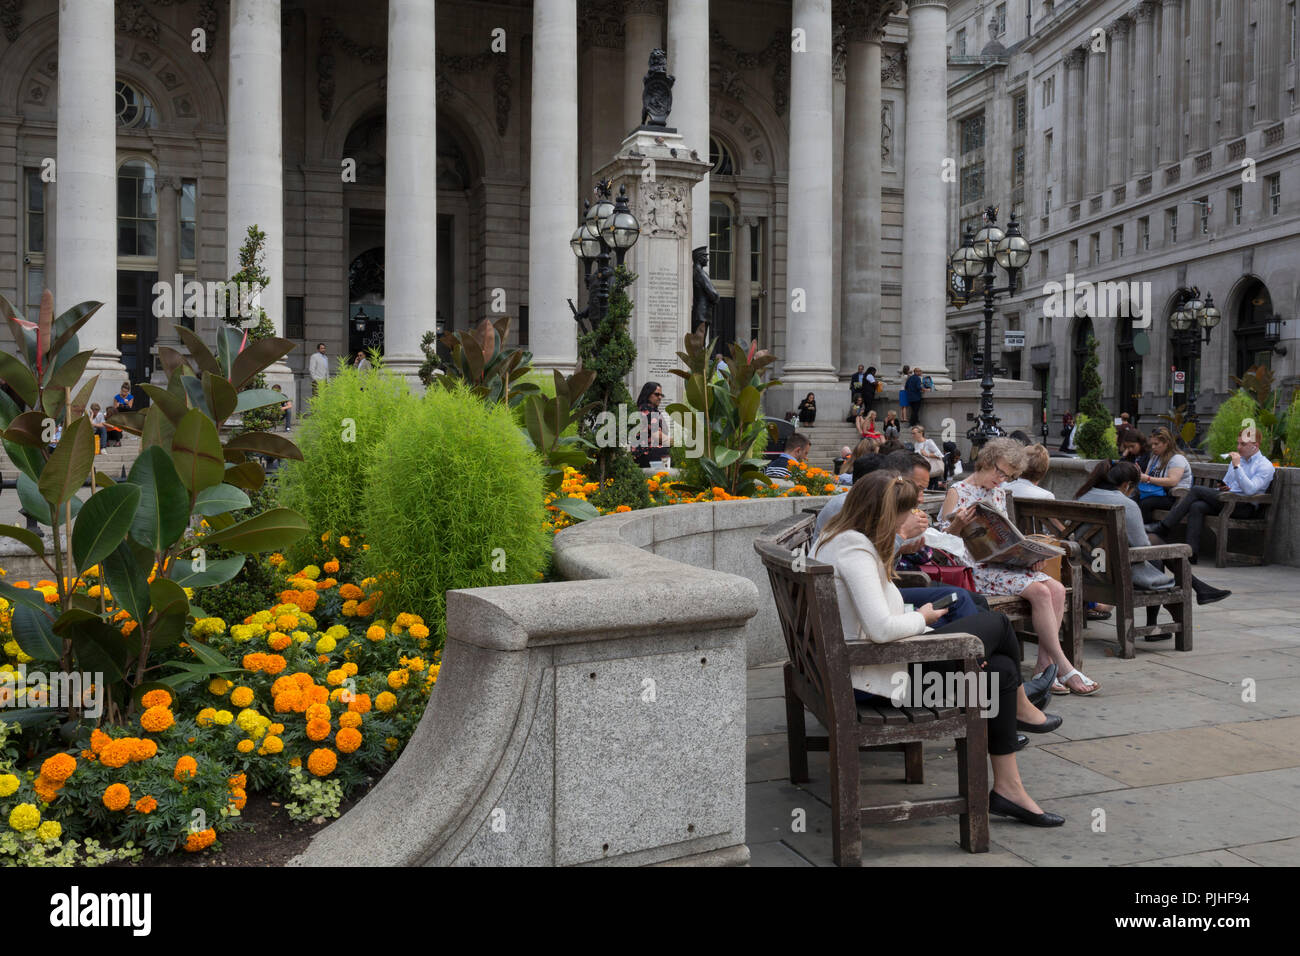 Yellow and orange marigolds in full bloom outside the Royal Exchange at Bank Triangle in the City of London - the capital's financial district, on 3rd September 2018, in London England. At the top of Doric and Ionic columns with their ornate stonework, powerfully strong lintels cross, bearing the load of fine artistry and carvings which feature the design by Sir William Tite in 1842-1844 and opened in 1844 by Queen Victoria whose name is written in Latin (Victoriae R). It's the third building of the kind erected on the same site. The first Exchange erected in 1564-70 by sir Thomas Gresham but  - Stock Image